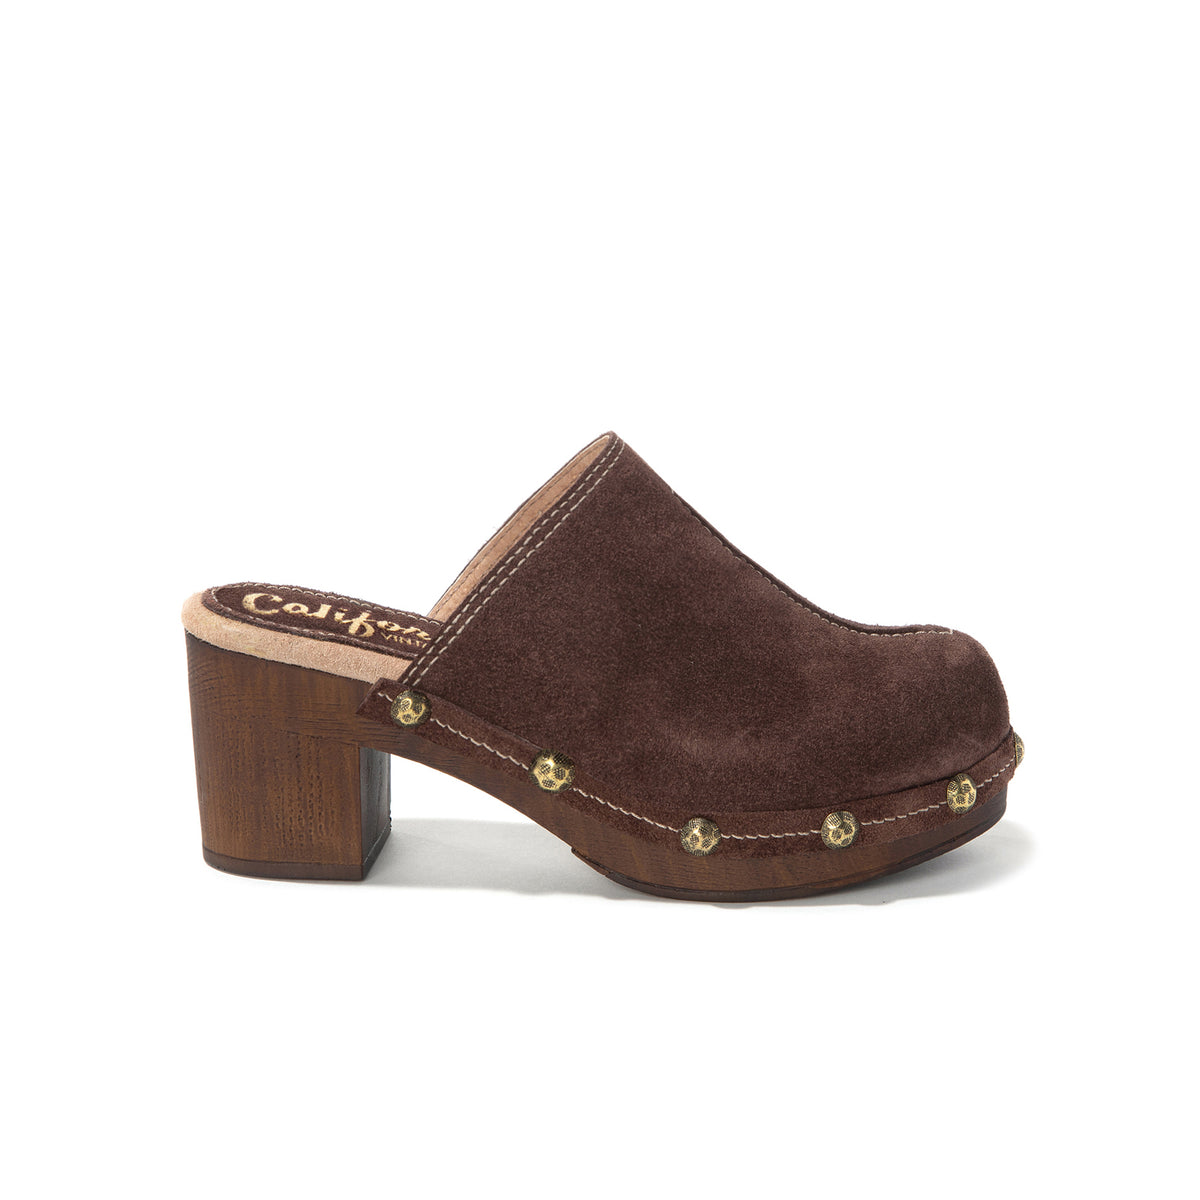 Susan | Chocolate Suede